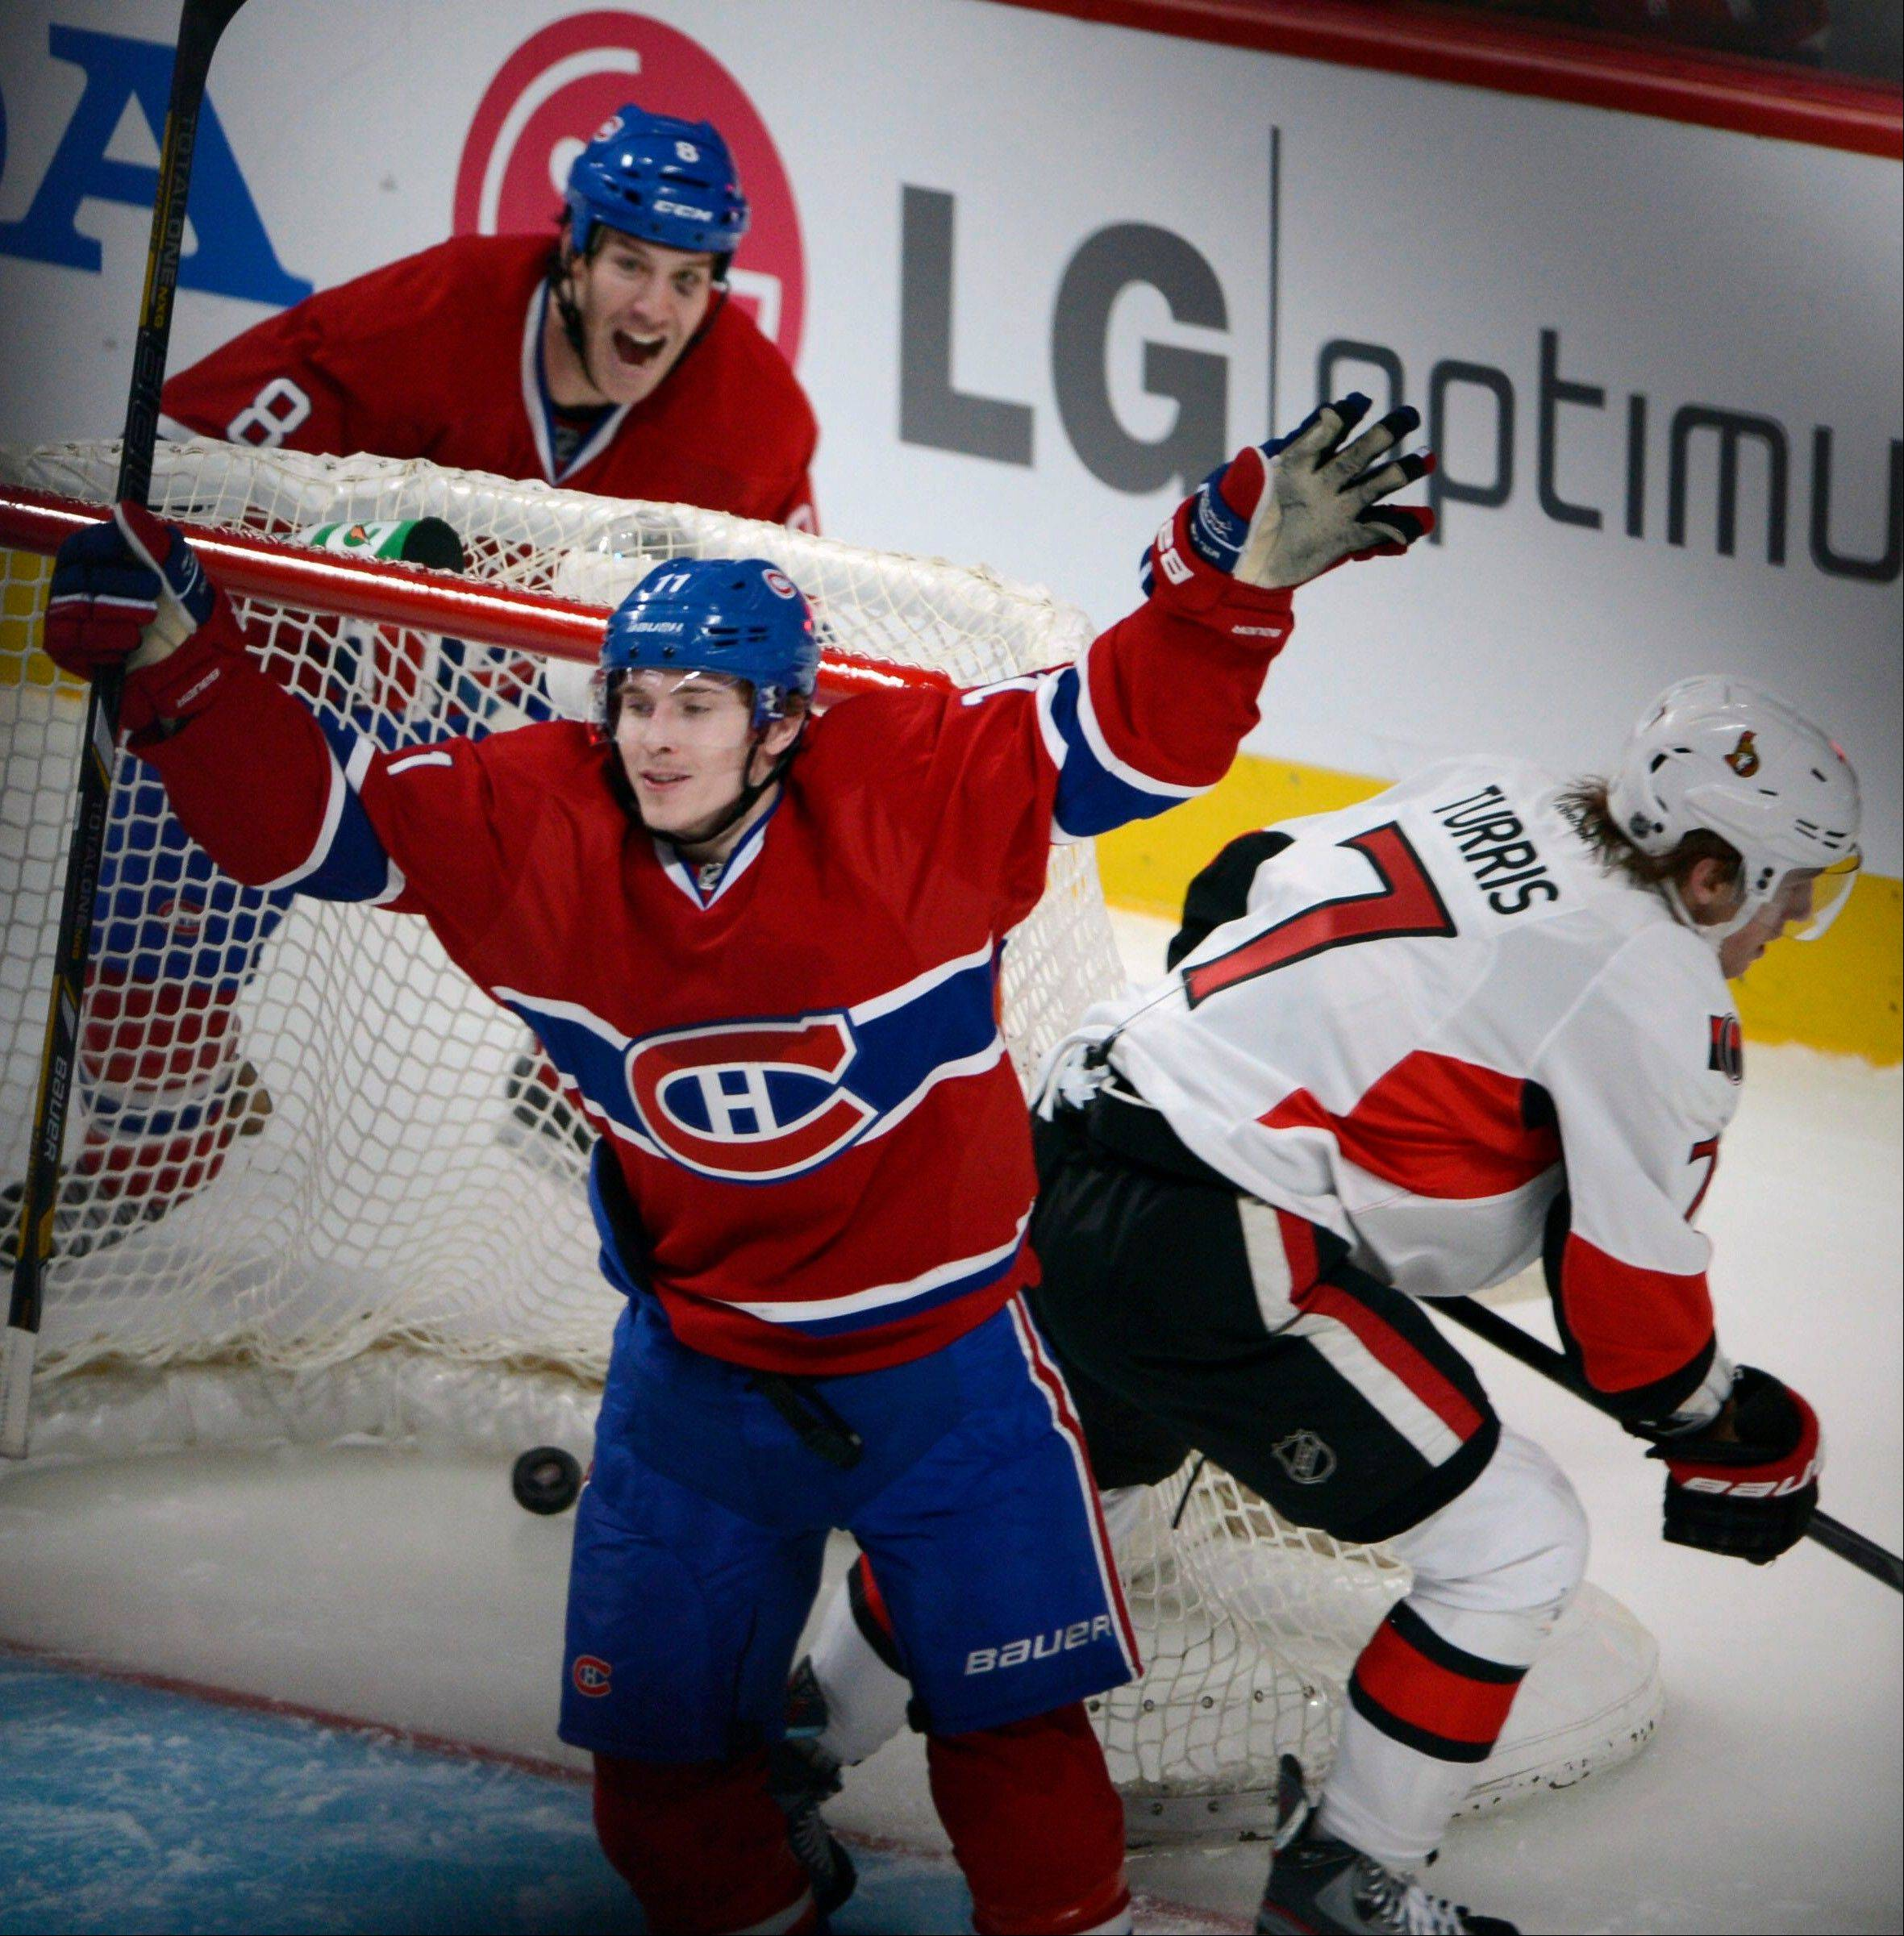 Montreal Canadiens forward Brendan Gallagher celebrates scoring as teammate Brandon Prust (8) and Ottawa Senators forward Kyle Turris (7) look on during second-period NHL hockey Game 2 first-round playoff action in Montreal, Friday, May 3, 2013. (AP Photo/The Canadian Press, Ryan Remiorz)